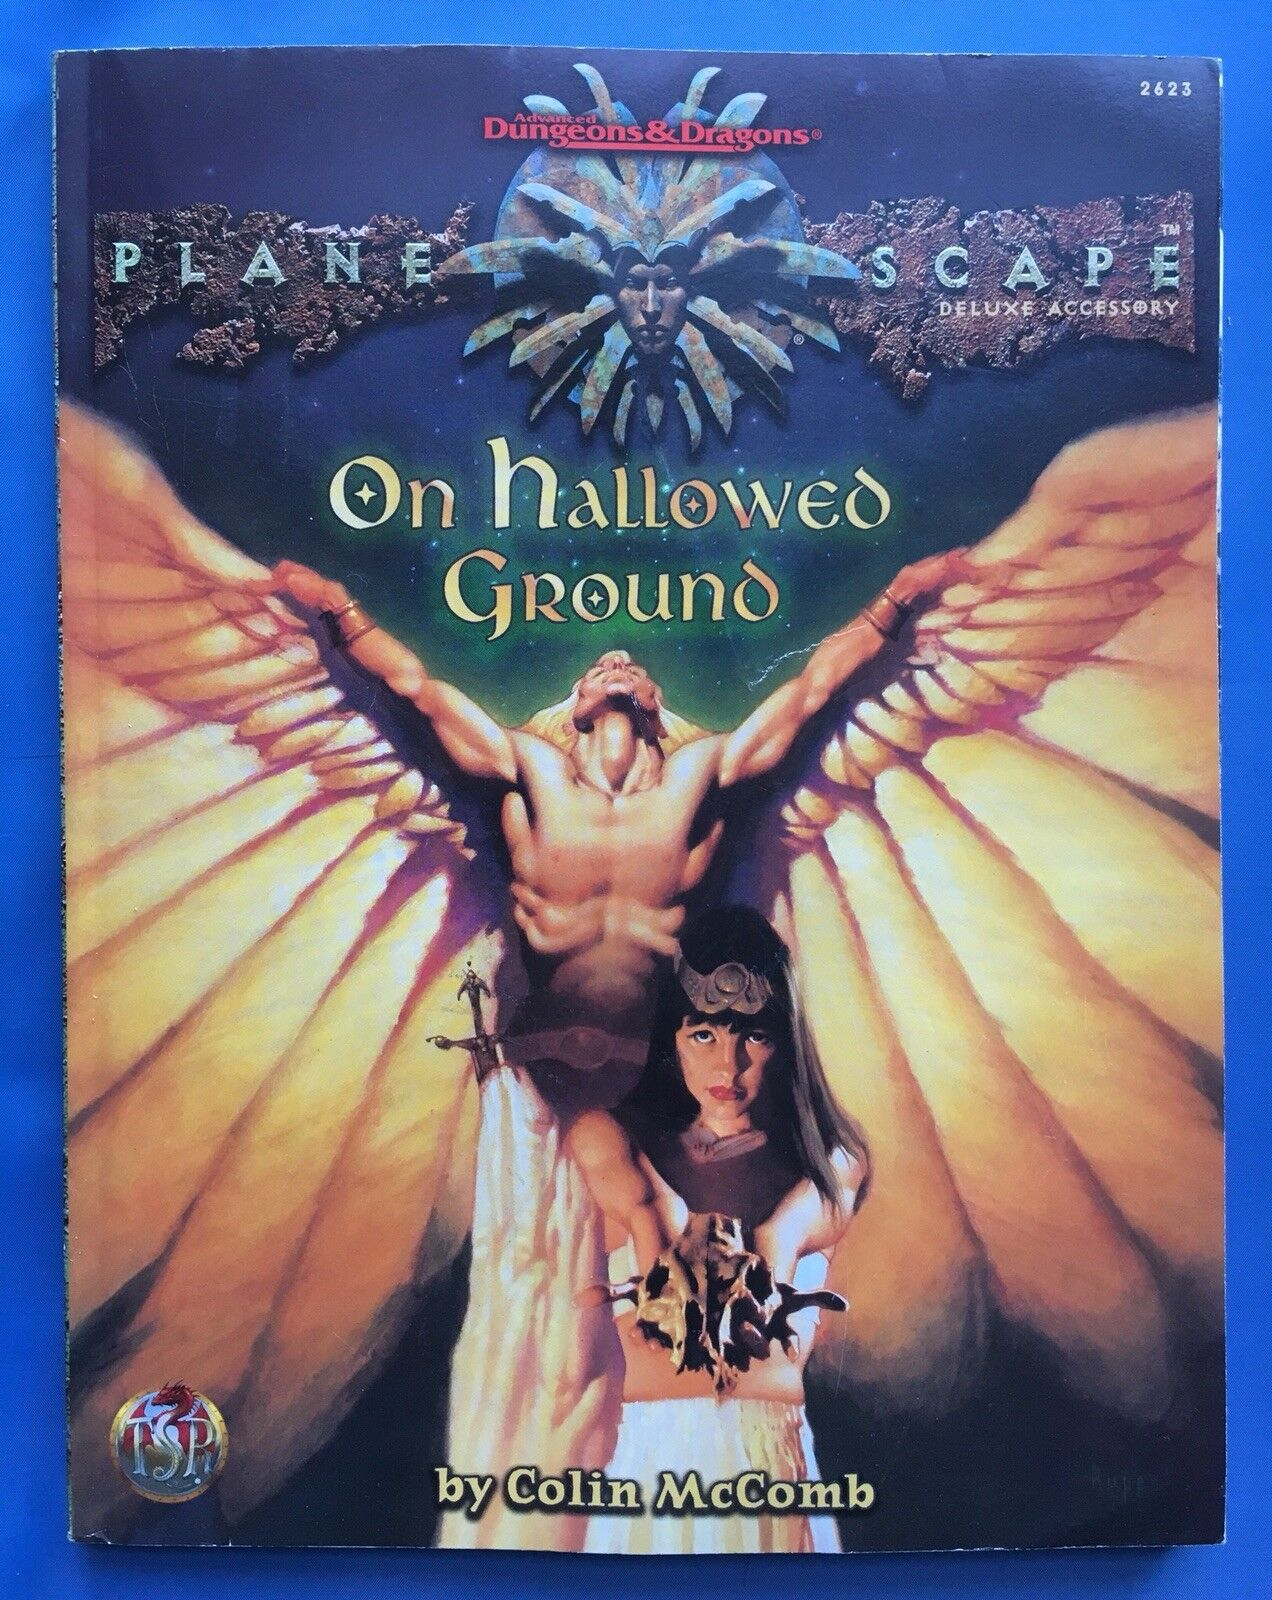 Planescape - On Hallowed Ground - TSR Deluxe Accessory